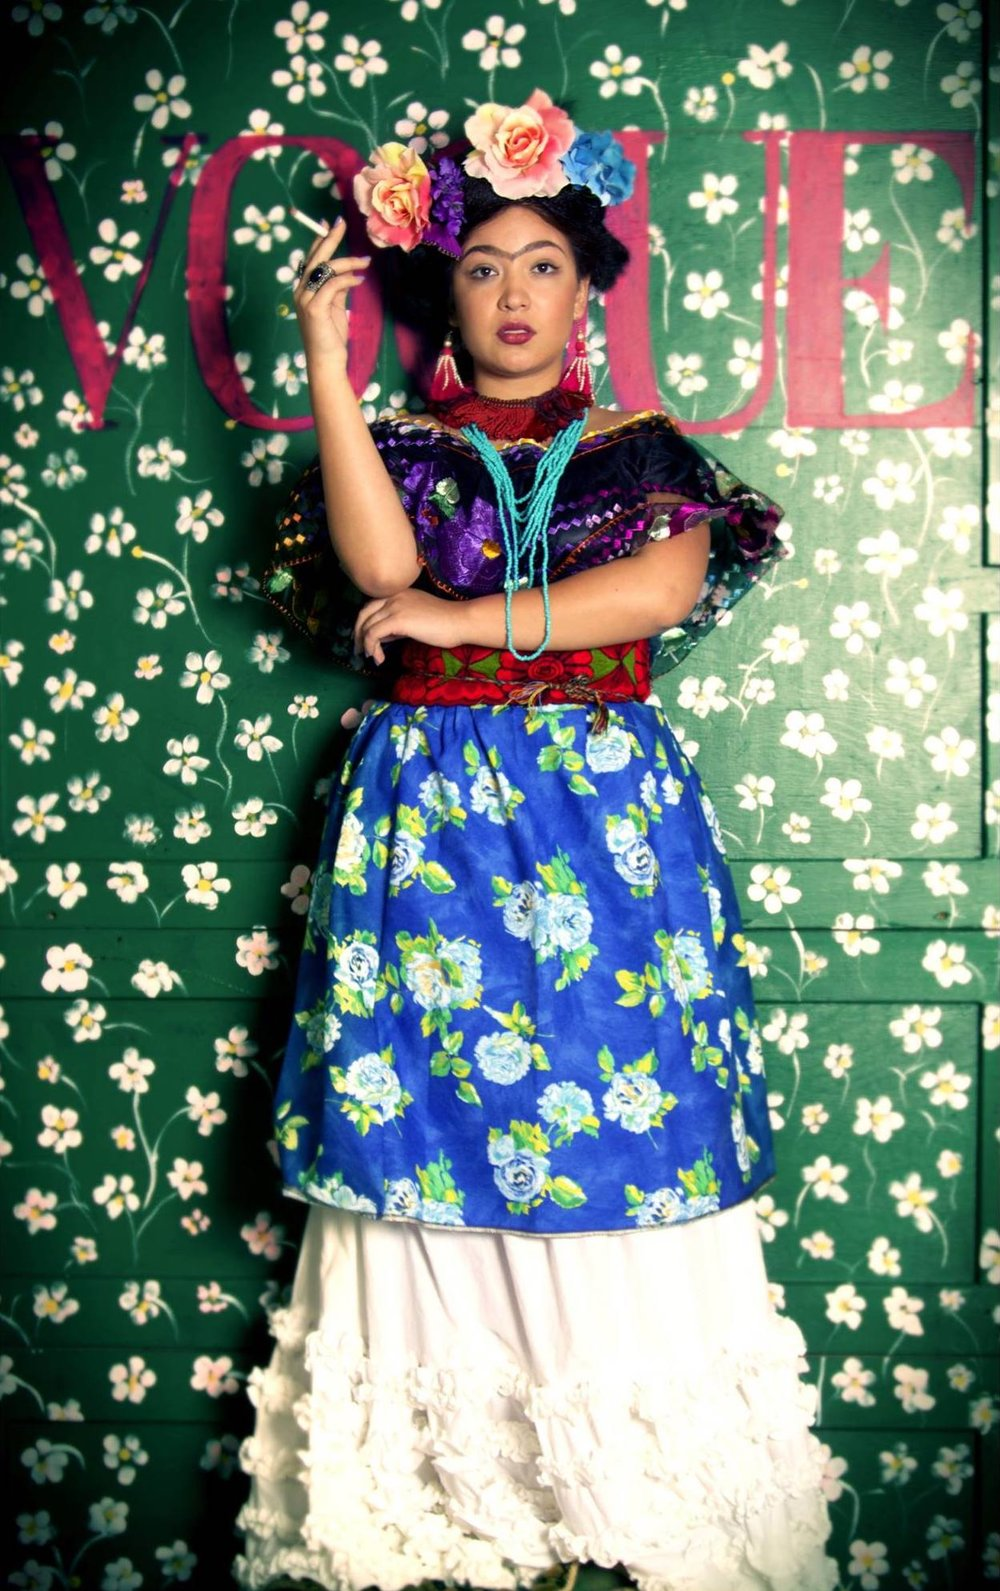 Frida photoshoot at the Boutique Photo Loft; 2016;  role: set design assistant, production assistant ; produced and designed by Shari Cornes; photographed by Amanda Pearon- lqbal; modeled by Dafne Lozano; makeup by Maria Dawley; Hair and headpiece by Francisco Chavez; Second hair by Tracey Preneur Bond (Agent Media); wardrobe by Shari Cornes, Audra Elizabeth, and Lubia Reyes; Styling by Lubia Reyes, Dafne Lozano, and Shari Cornes; Set design by Shari Cornes and Cokys Reyes-Arellano; curation and painting by Cokys Reyes-Arellano and team